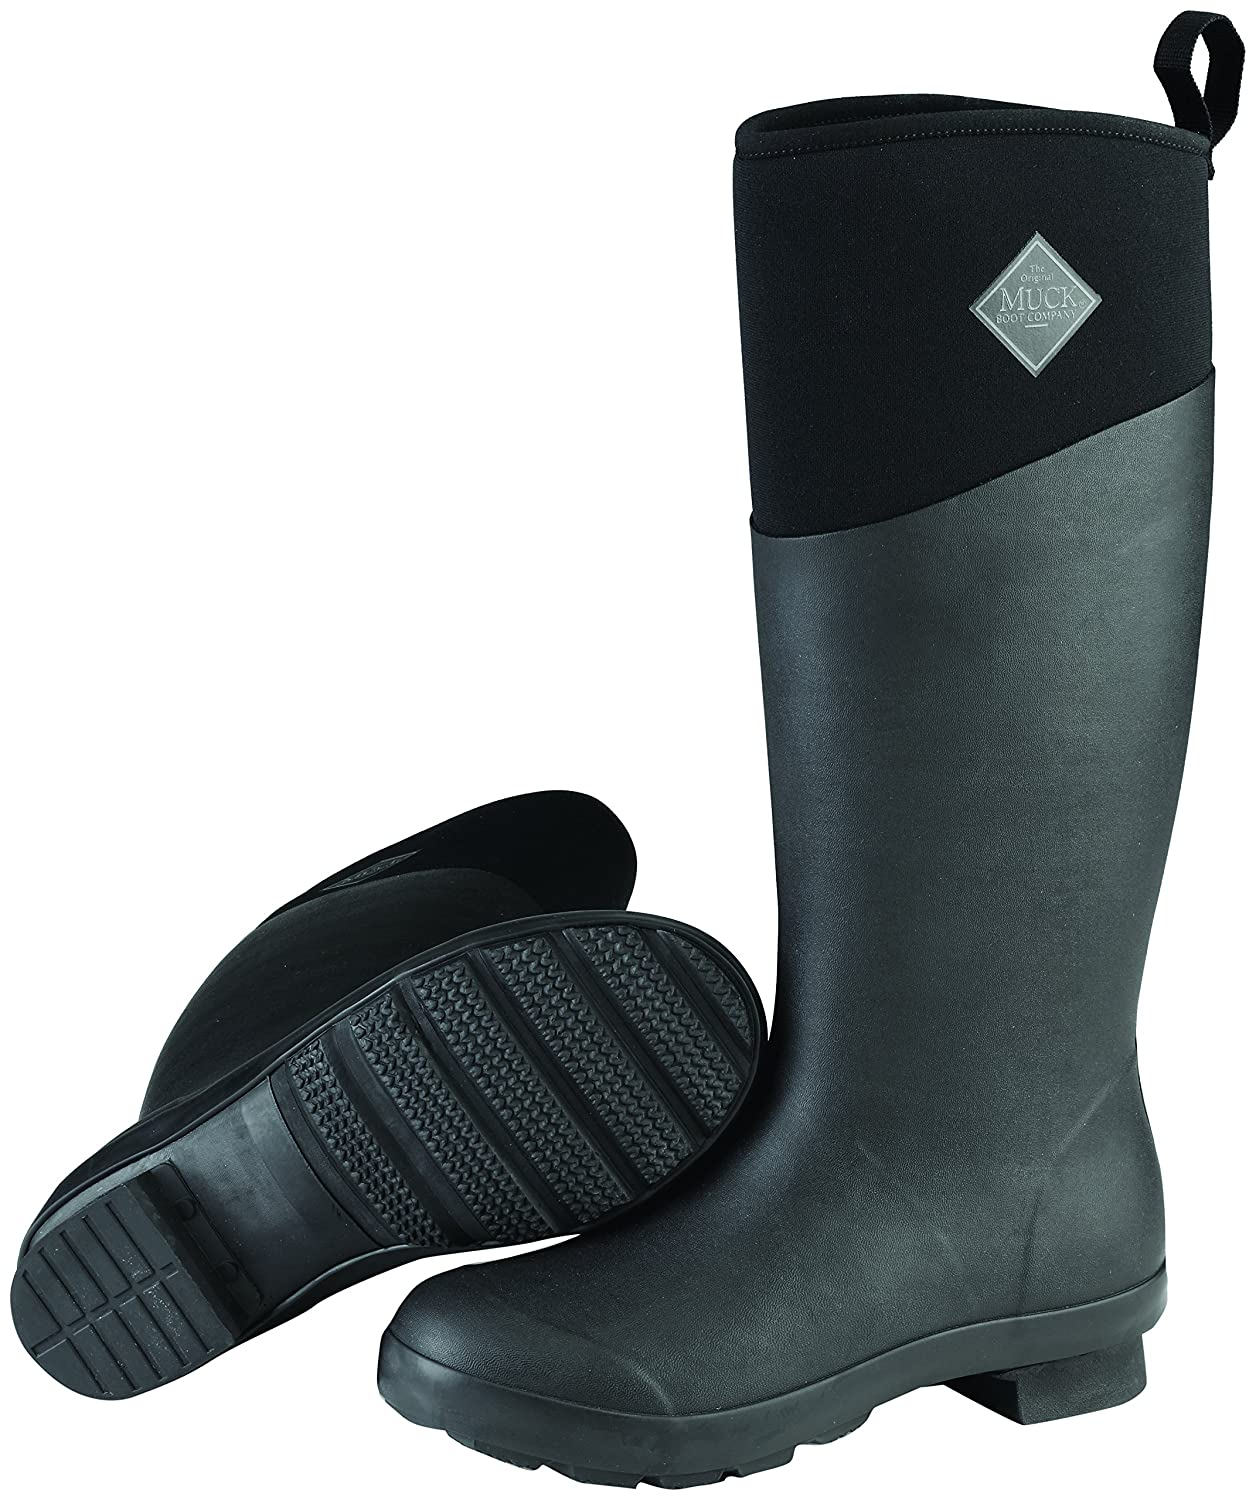 d2bcebe03 Muck Boot Tremont Wellie Tall Rubber Women's Cold Weather Boot